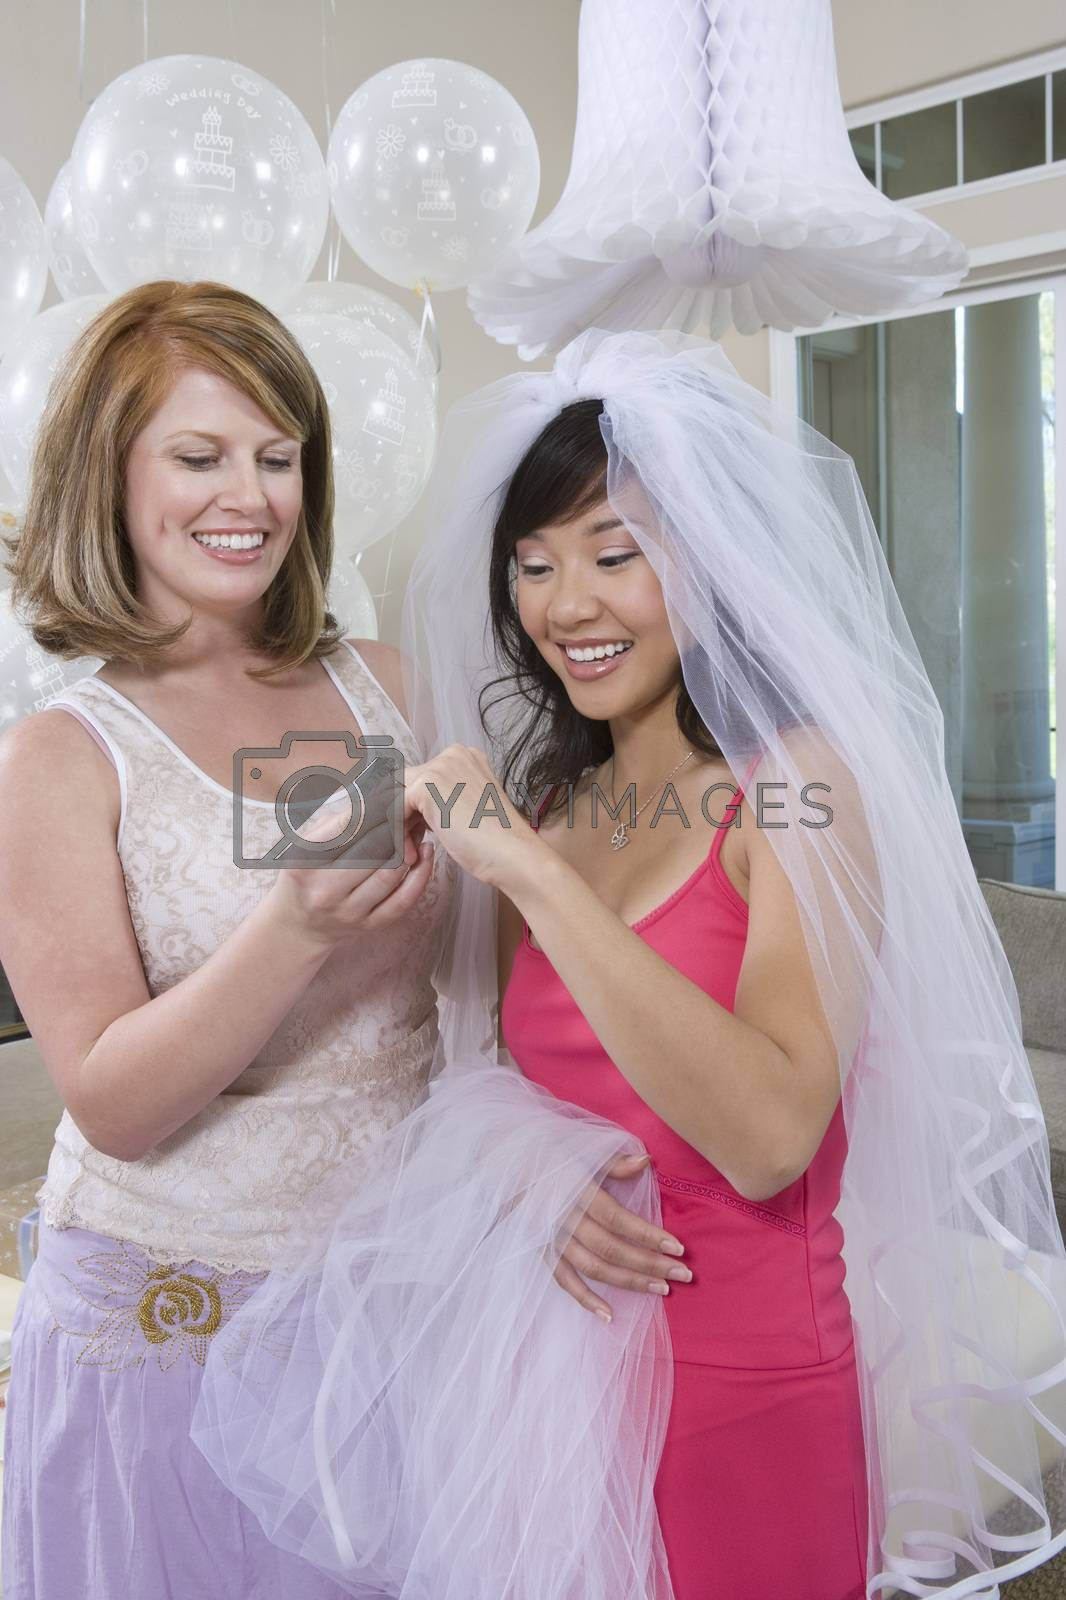 Bride With Her Friend Looking At Engagement Ring